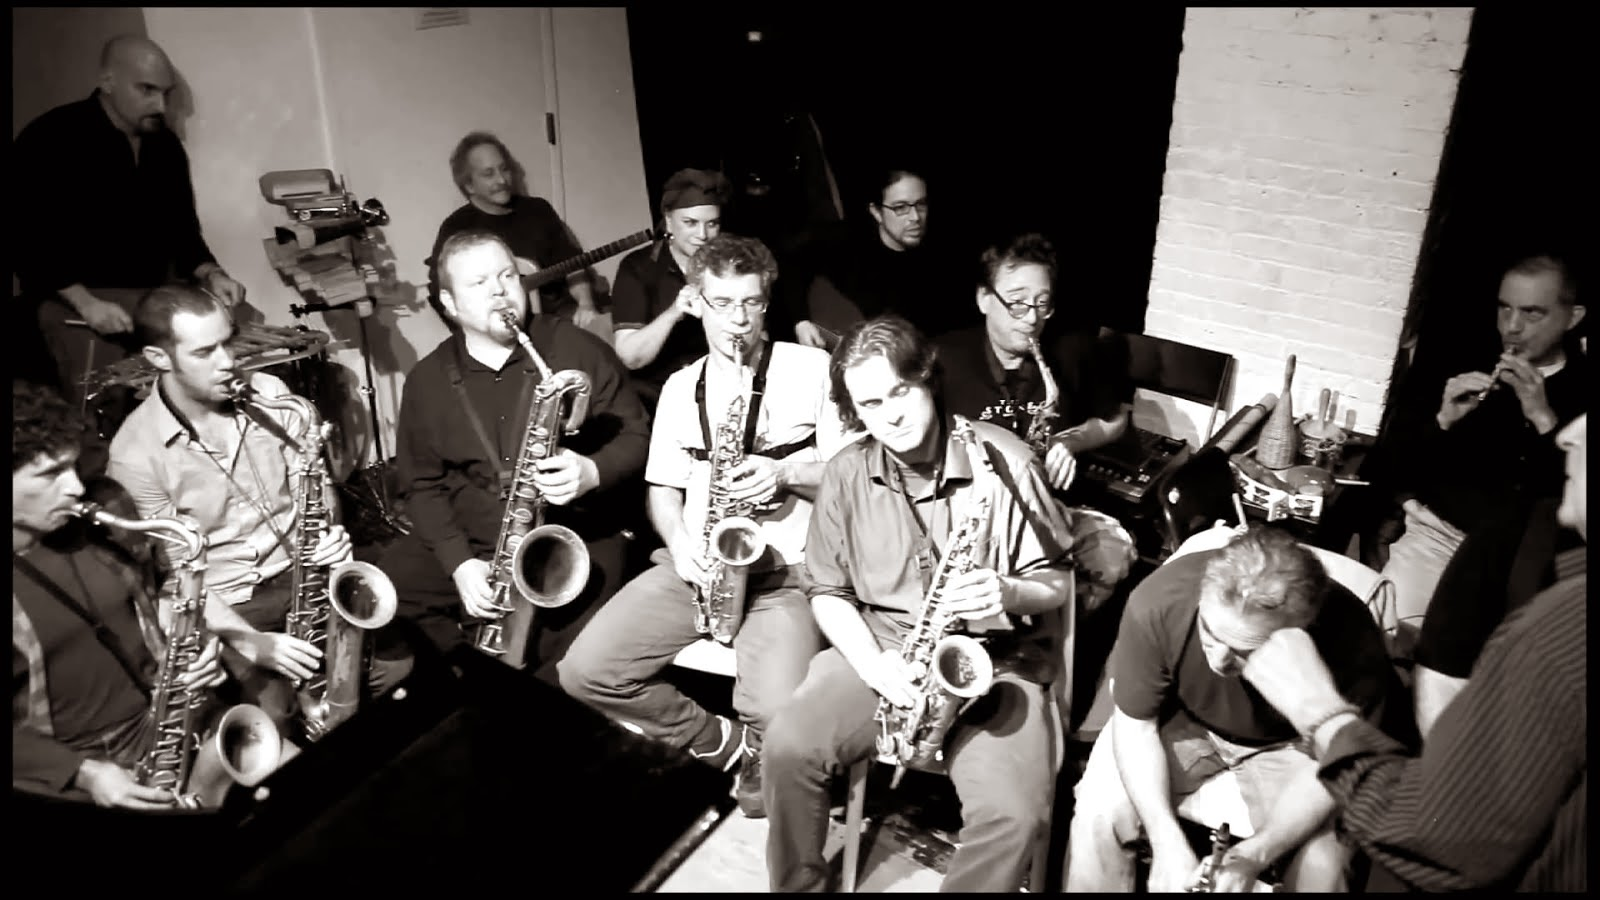 KARL BERGER'S IMPROVISERS ORCHESTRA at the Stone, NYC, 2011